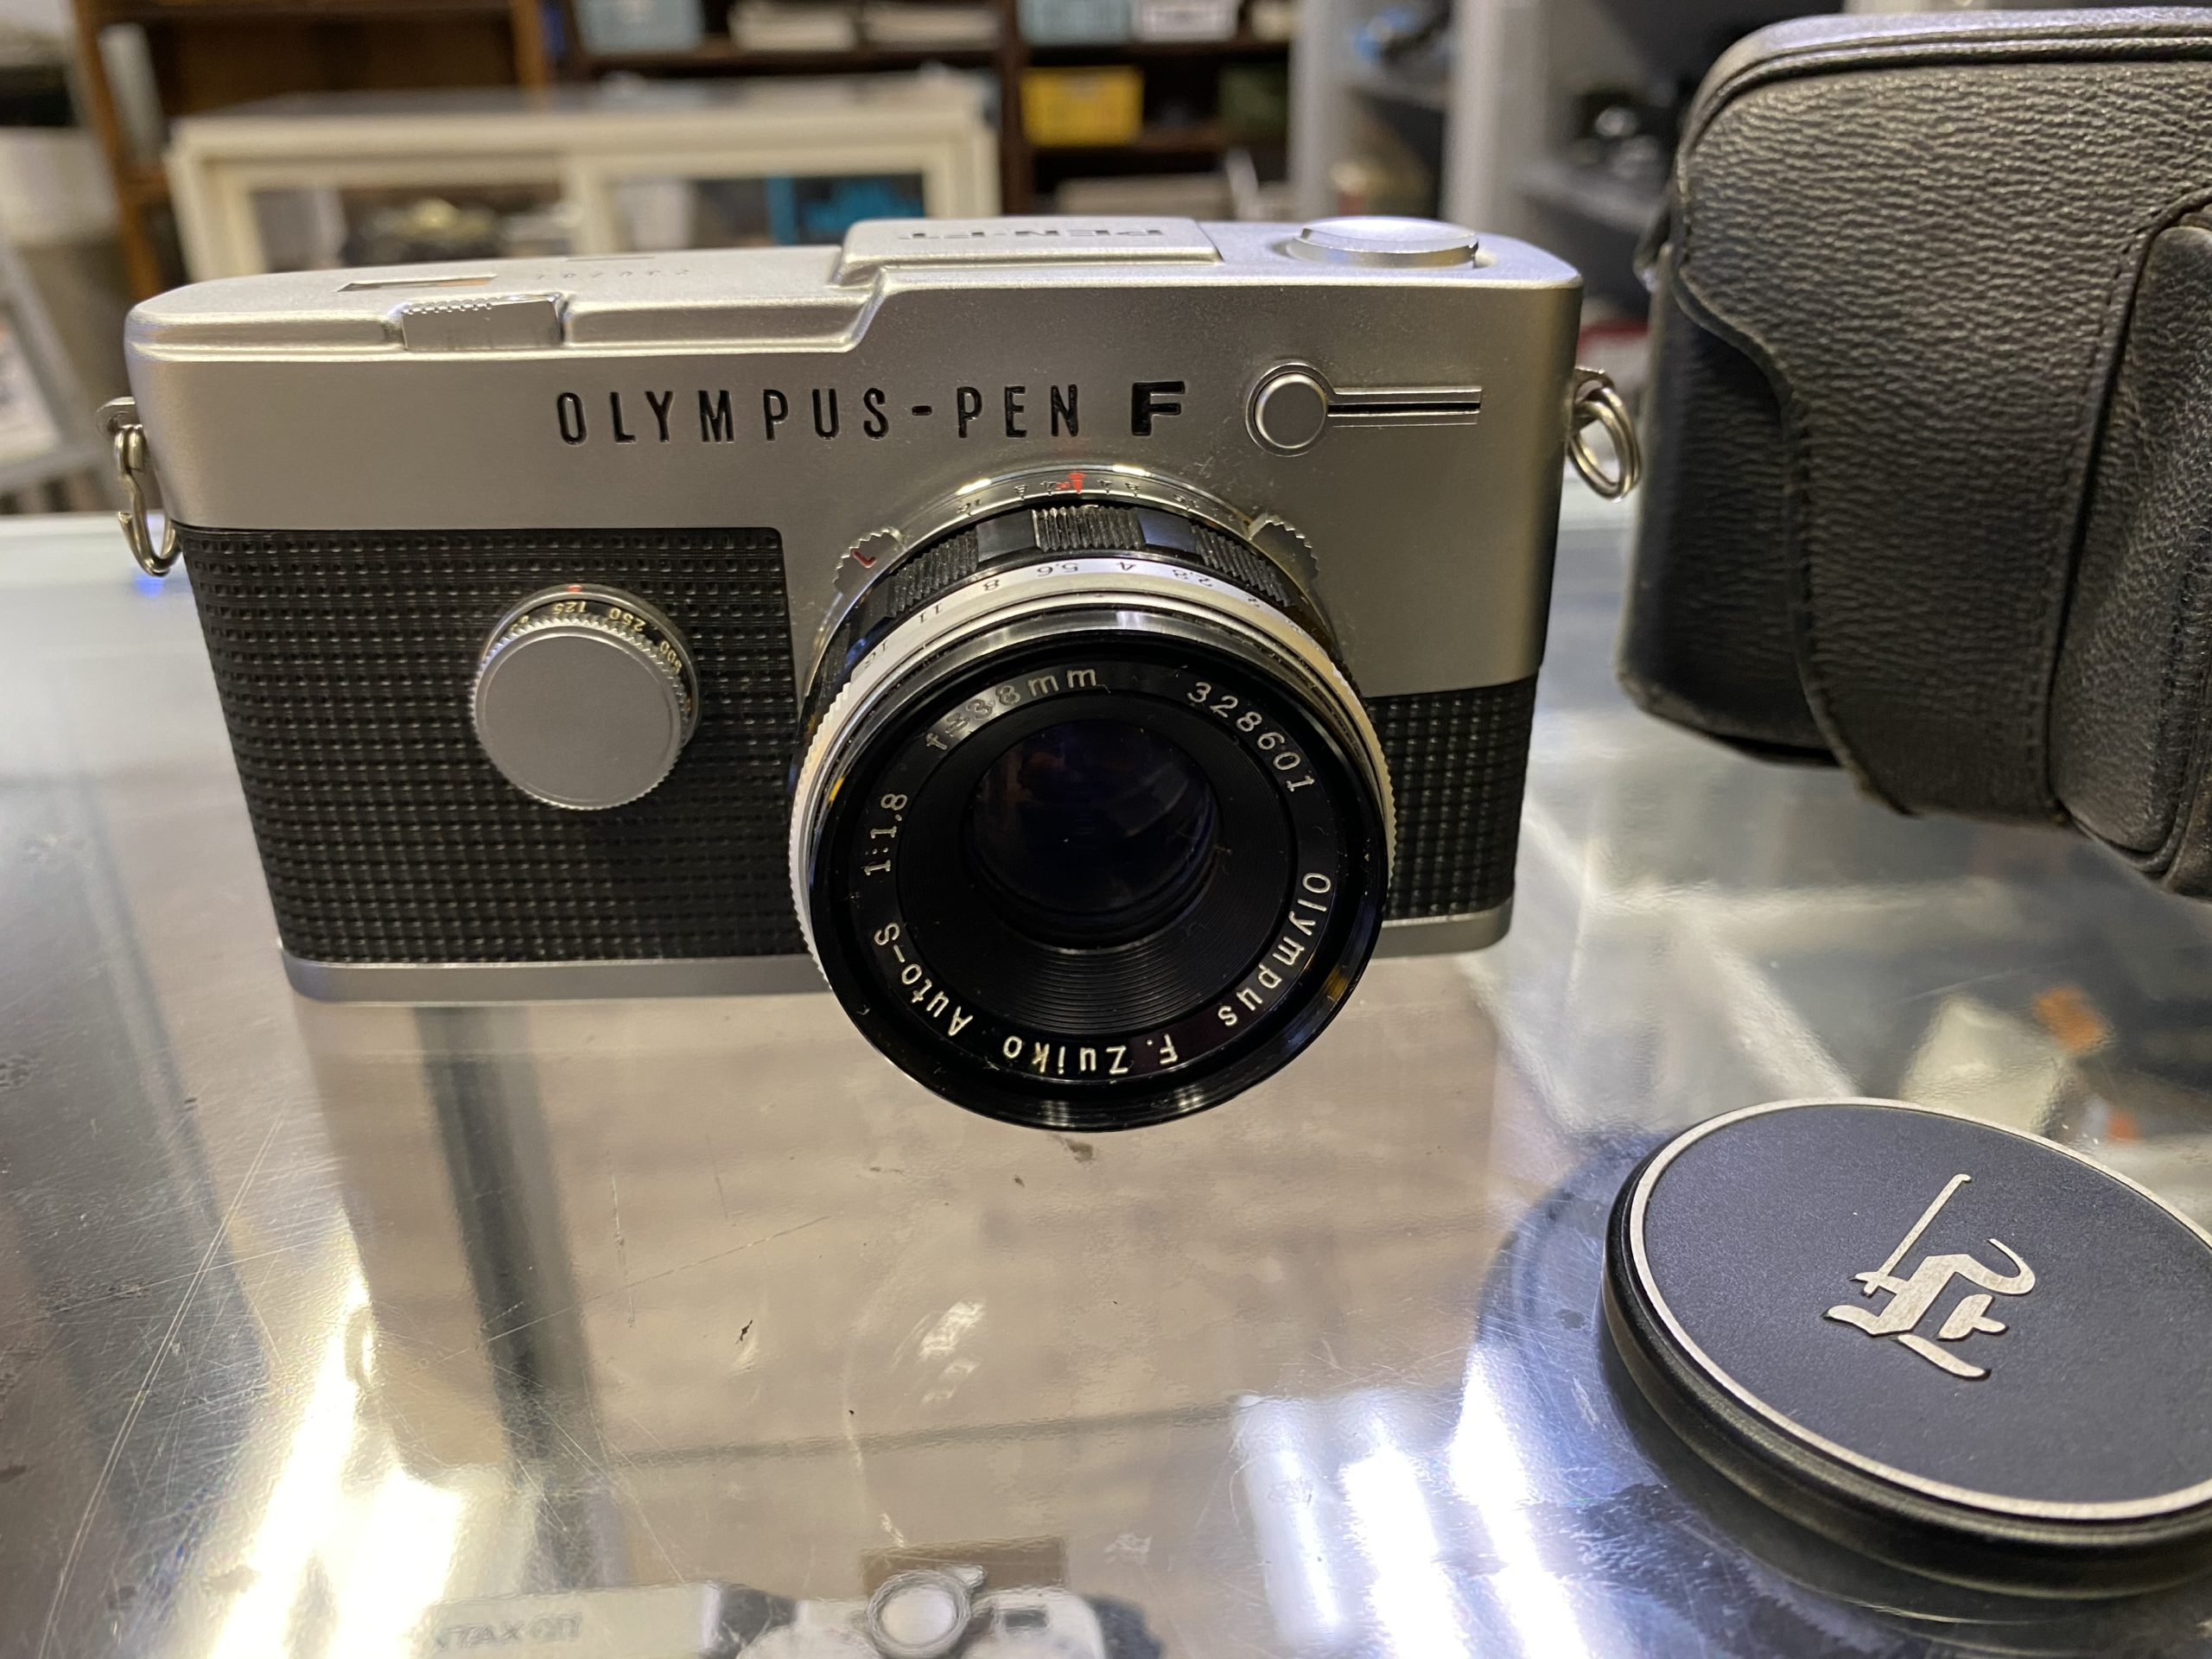 OLYMPUS PEN-FT F.Zuiko 38mm F1.8